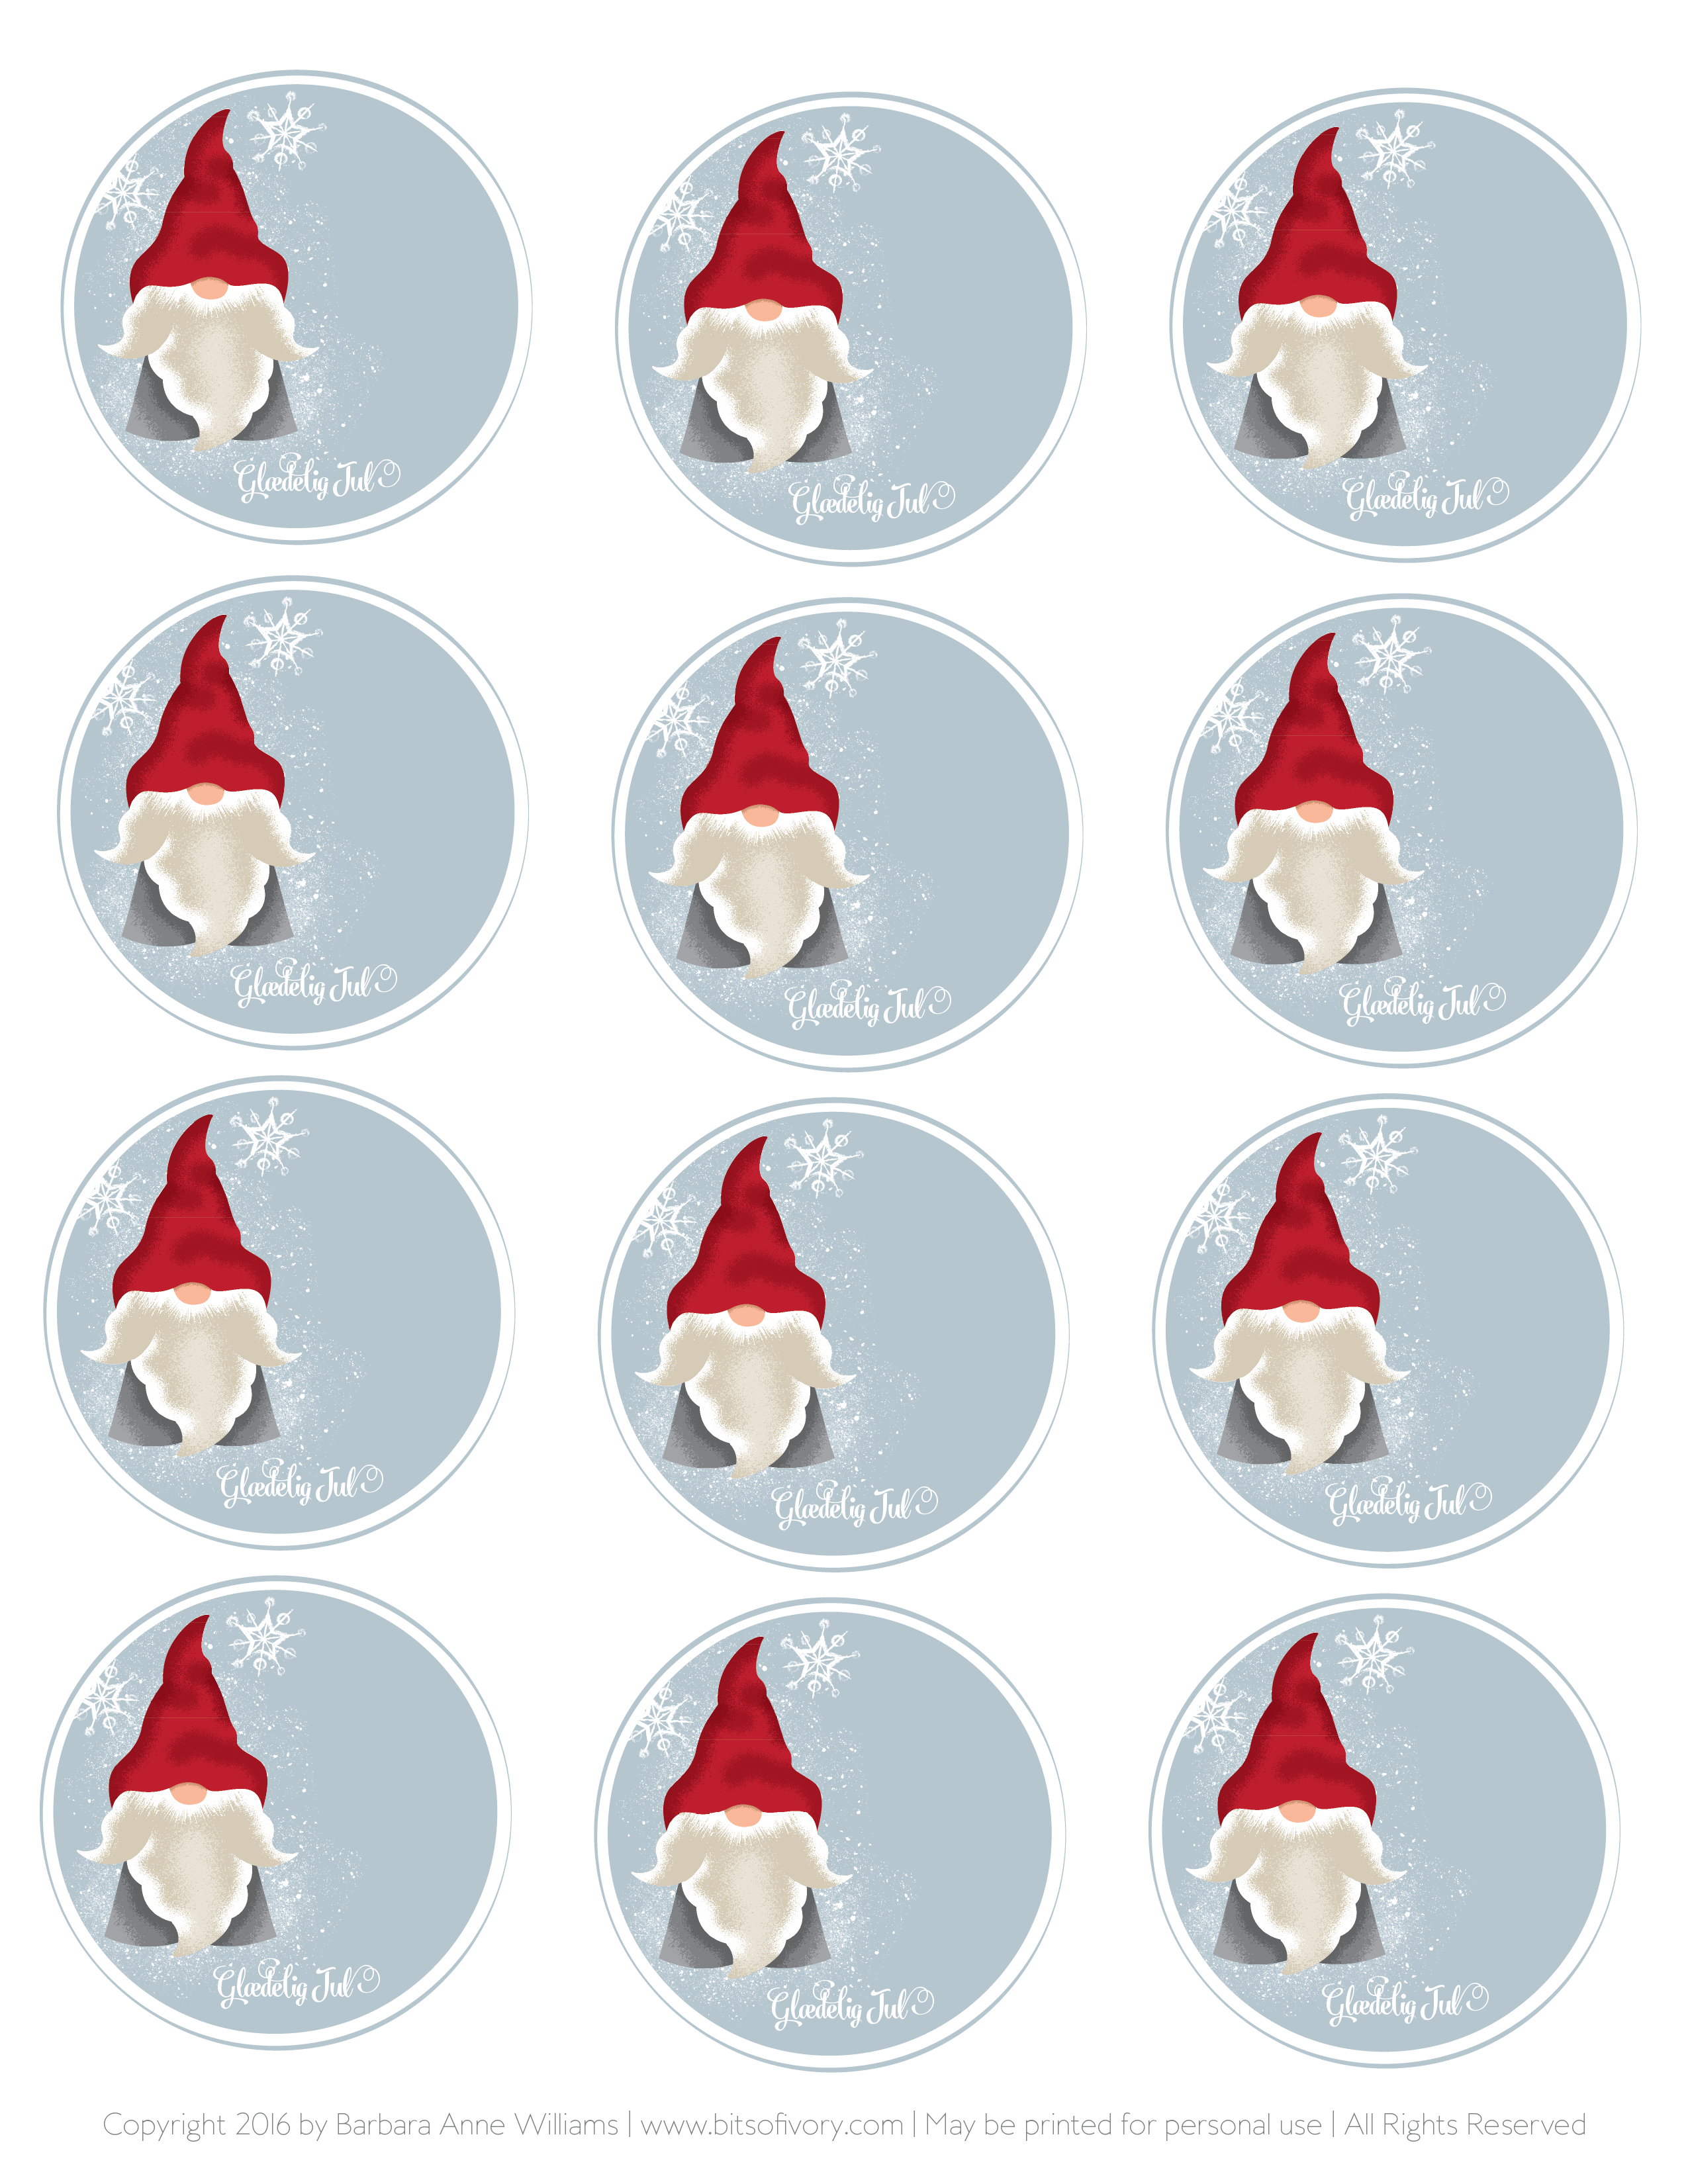 Printable Christmas Tags with Danish Nisse on snowy blue background from www.bitsofivory.com designed by Barbara Anne Williams